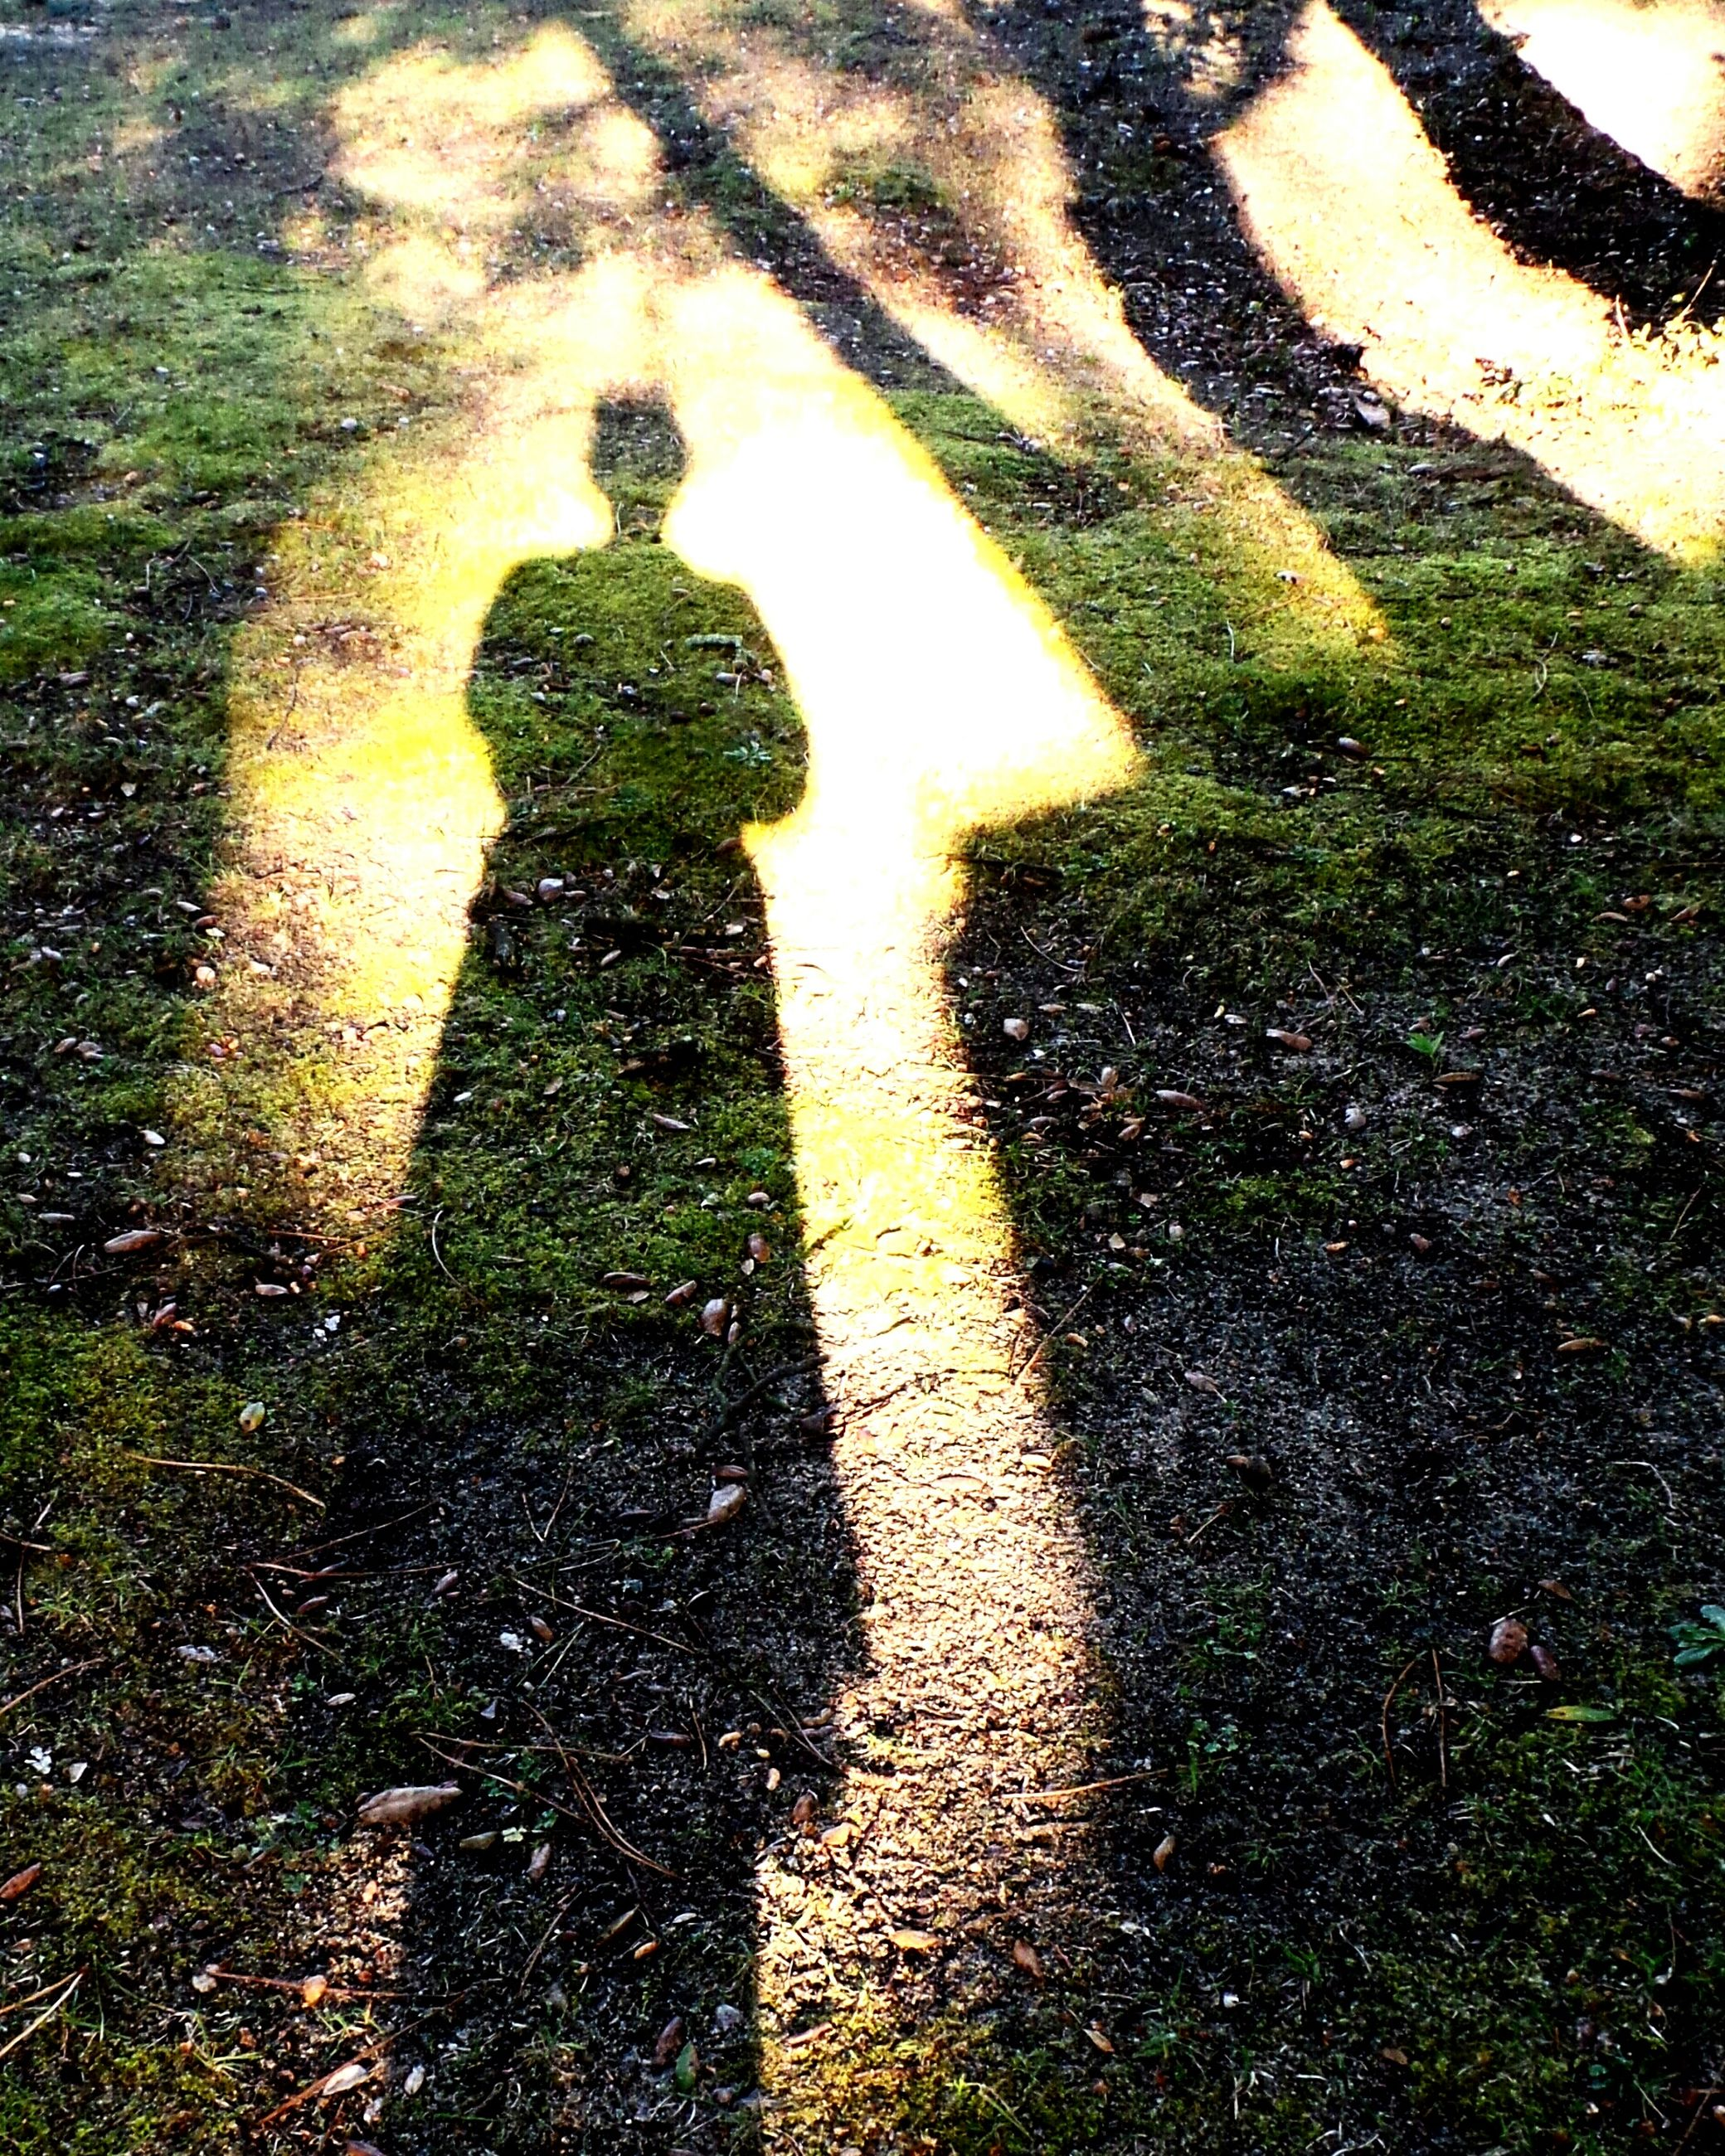 shadow, focus on shadow, sunlight, lifestyles, high angle view, leisure activity, silhouette, men, grass, unrecognizable person, tree, standing, street, outdoors, day, outline, nature